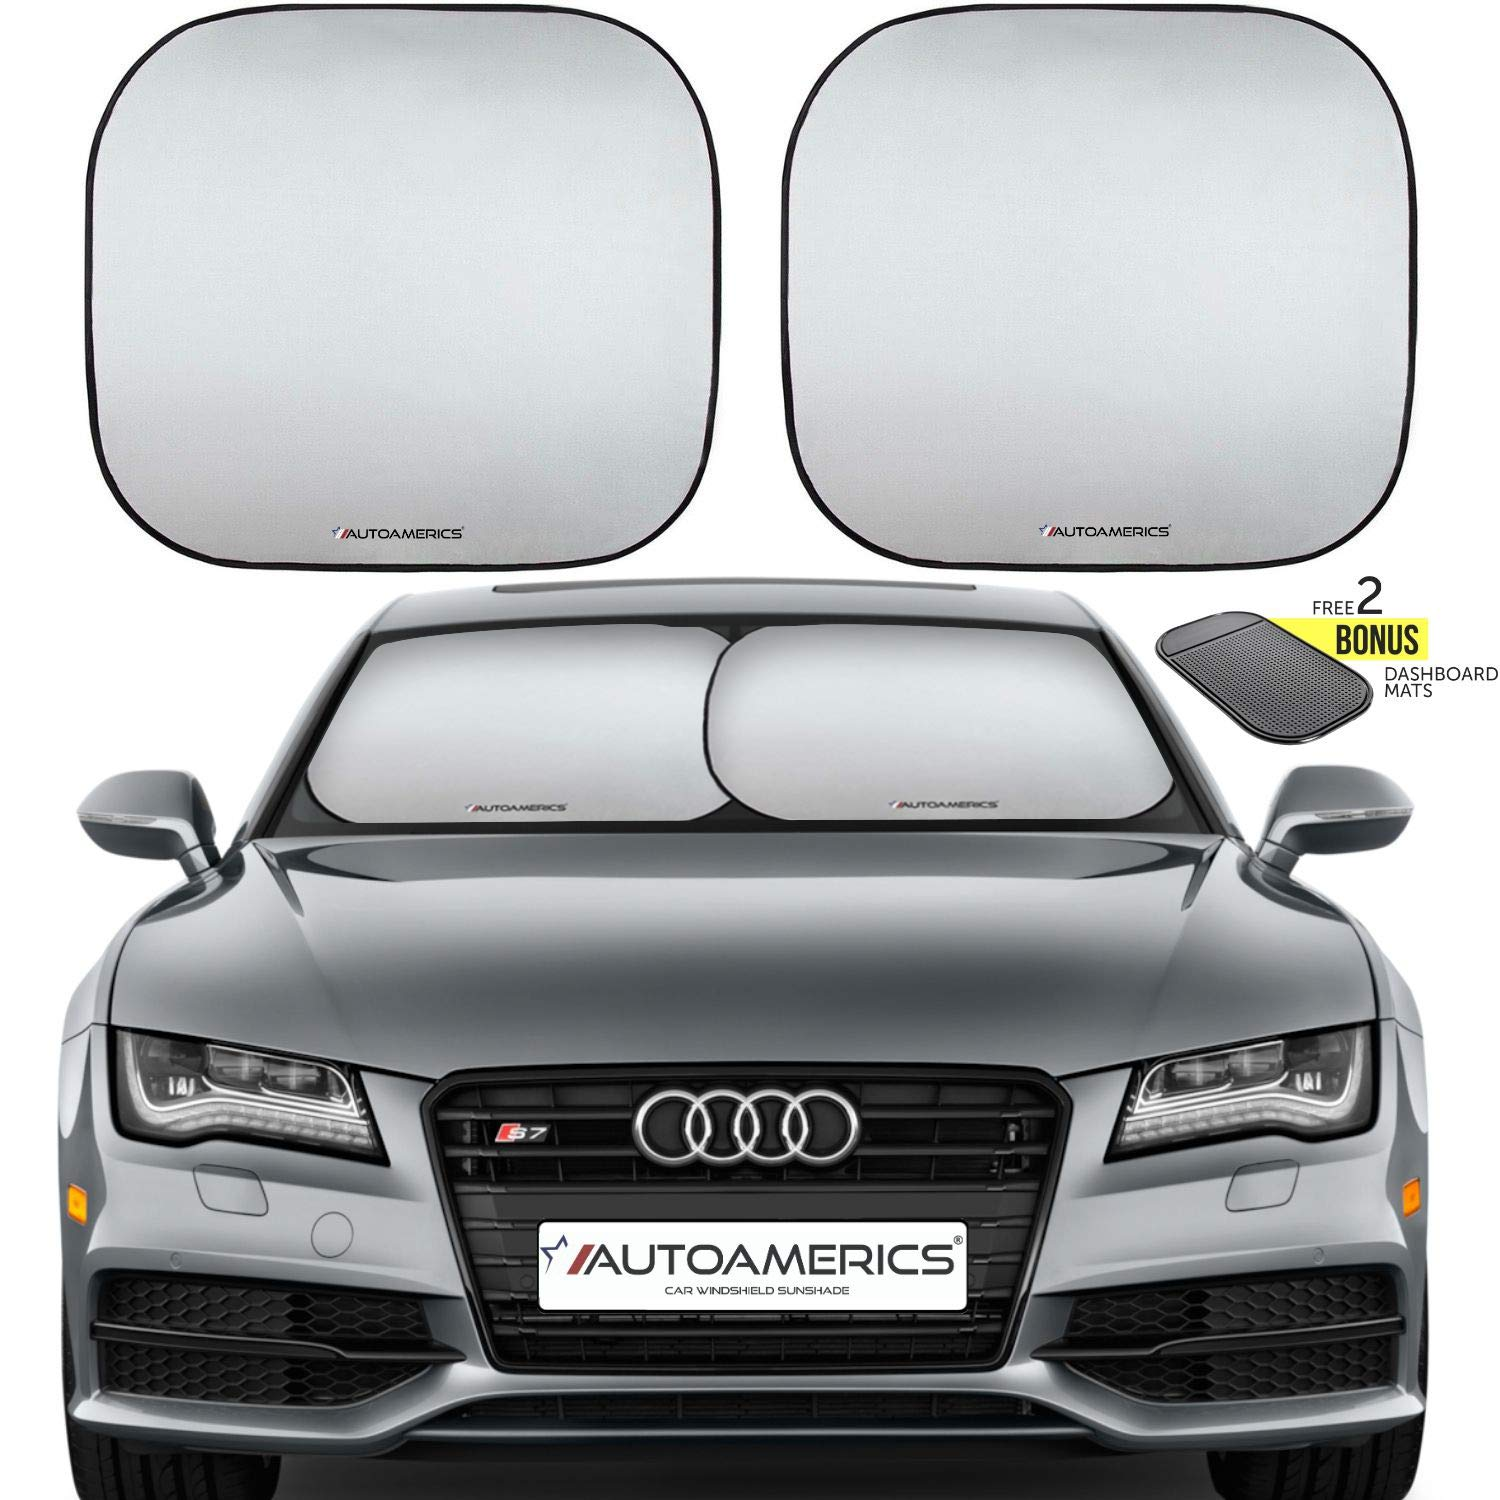 Autoamerics Windshield Sun Shade Reflector